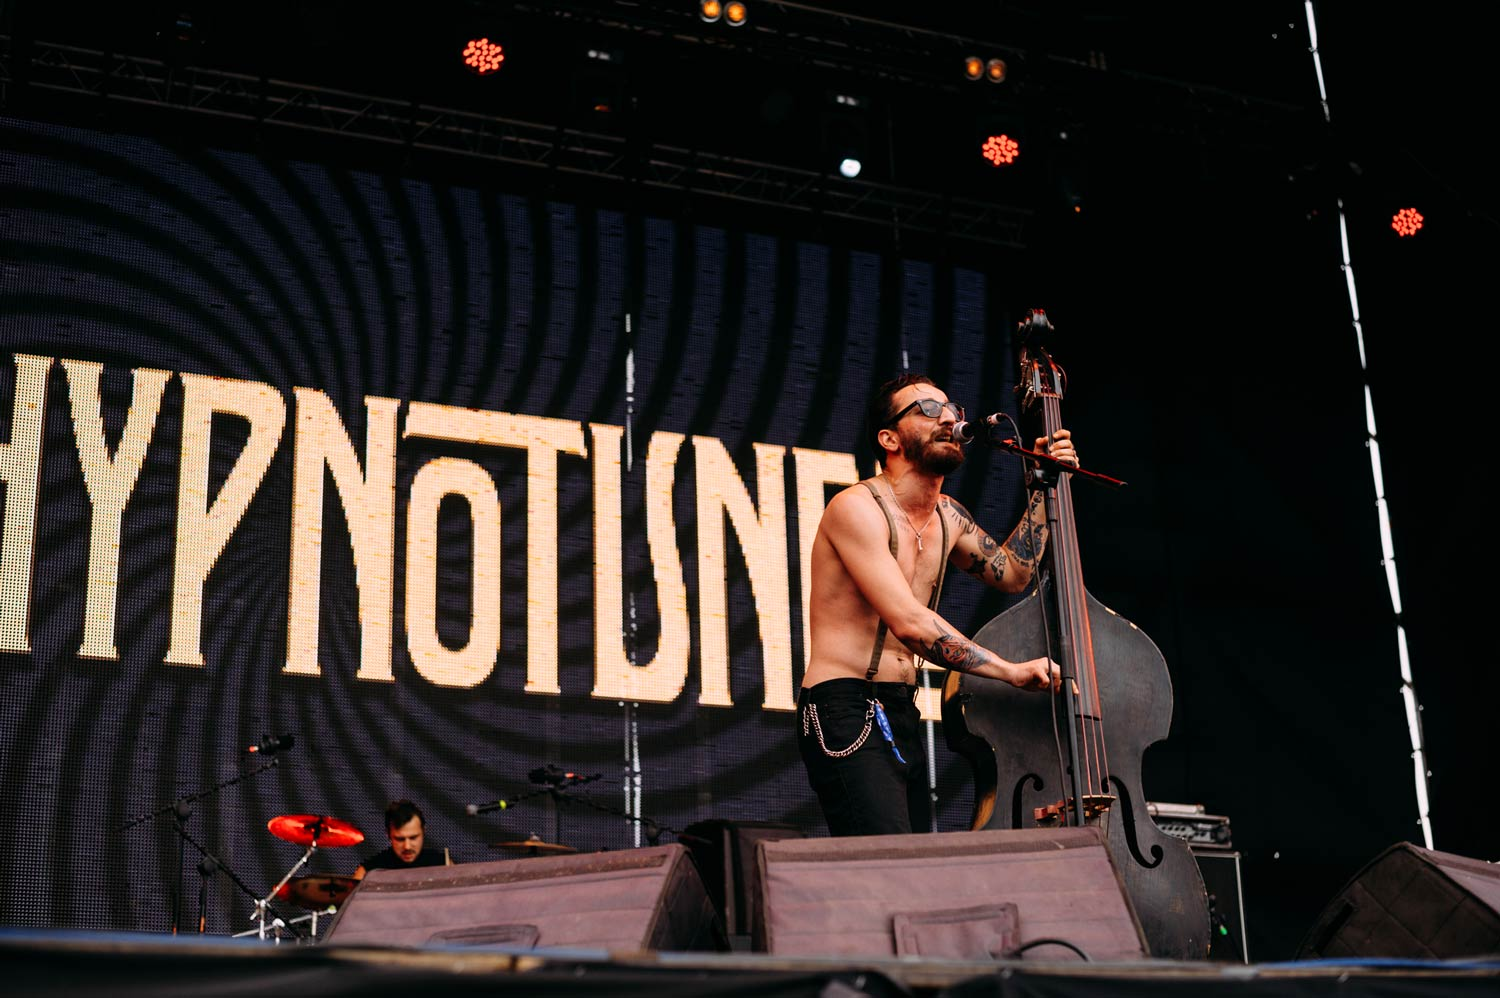 The Hypnotunez ZaxidFest концертная фотография